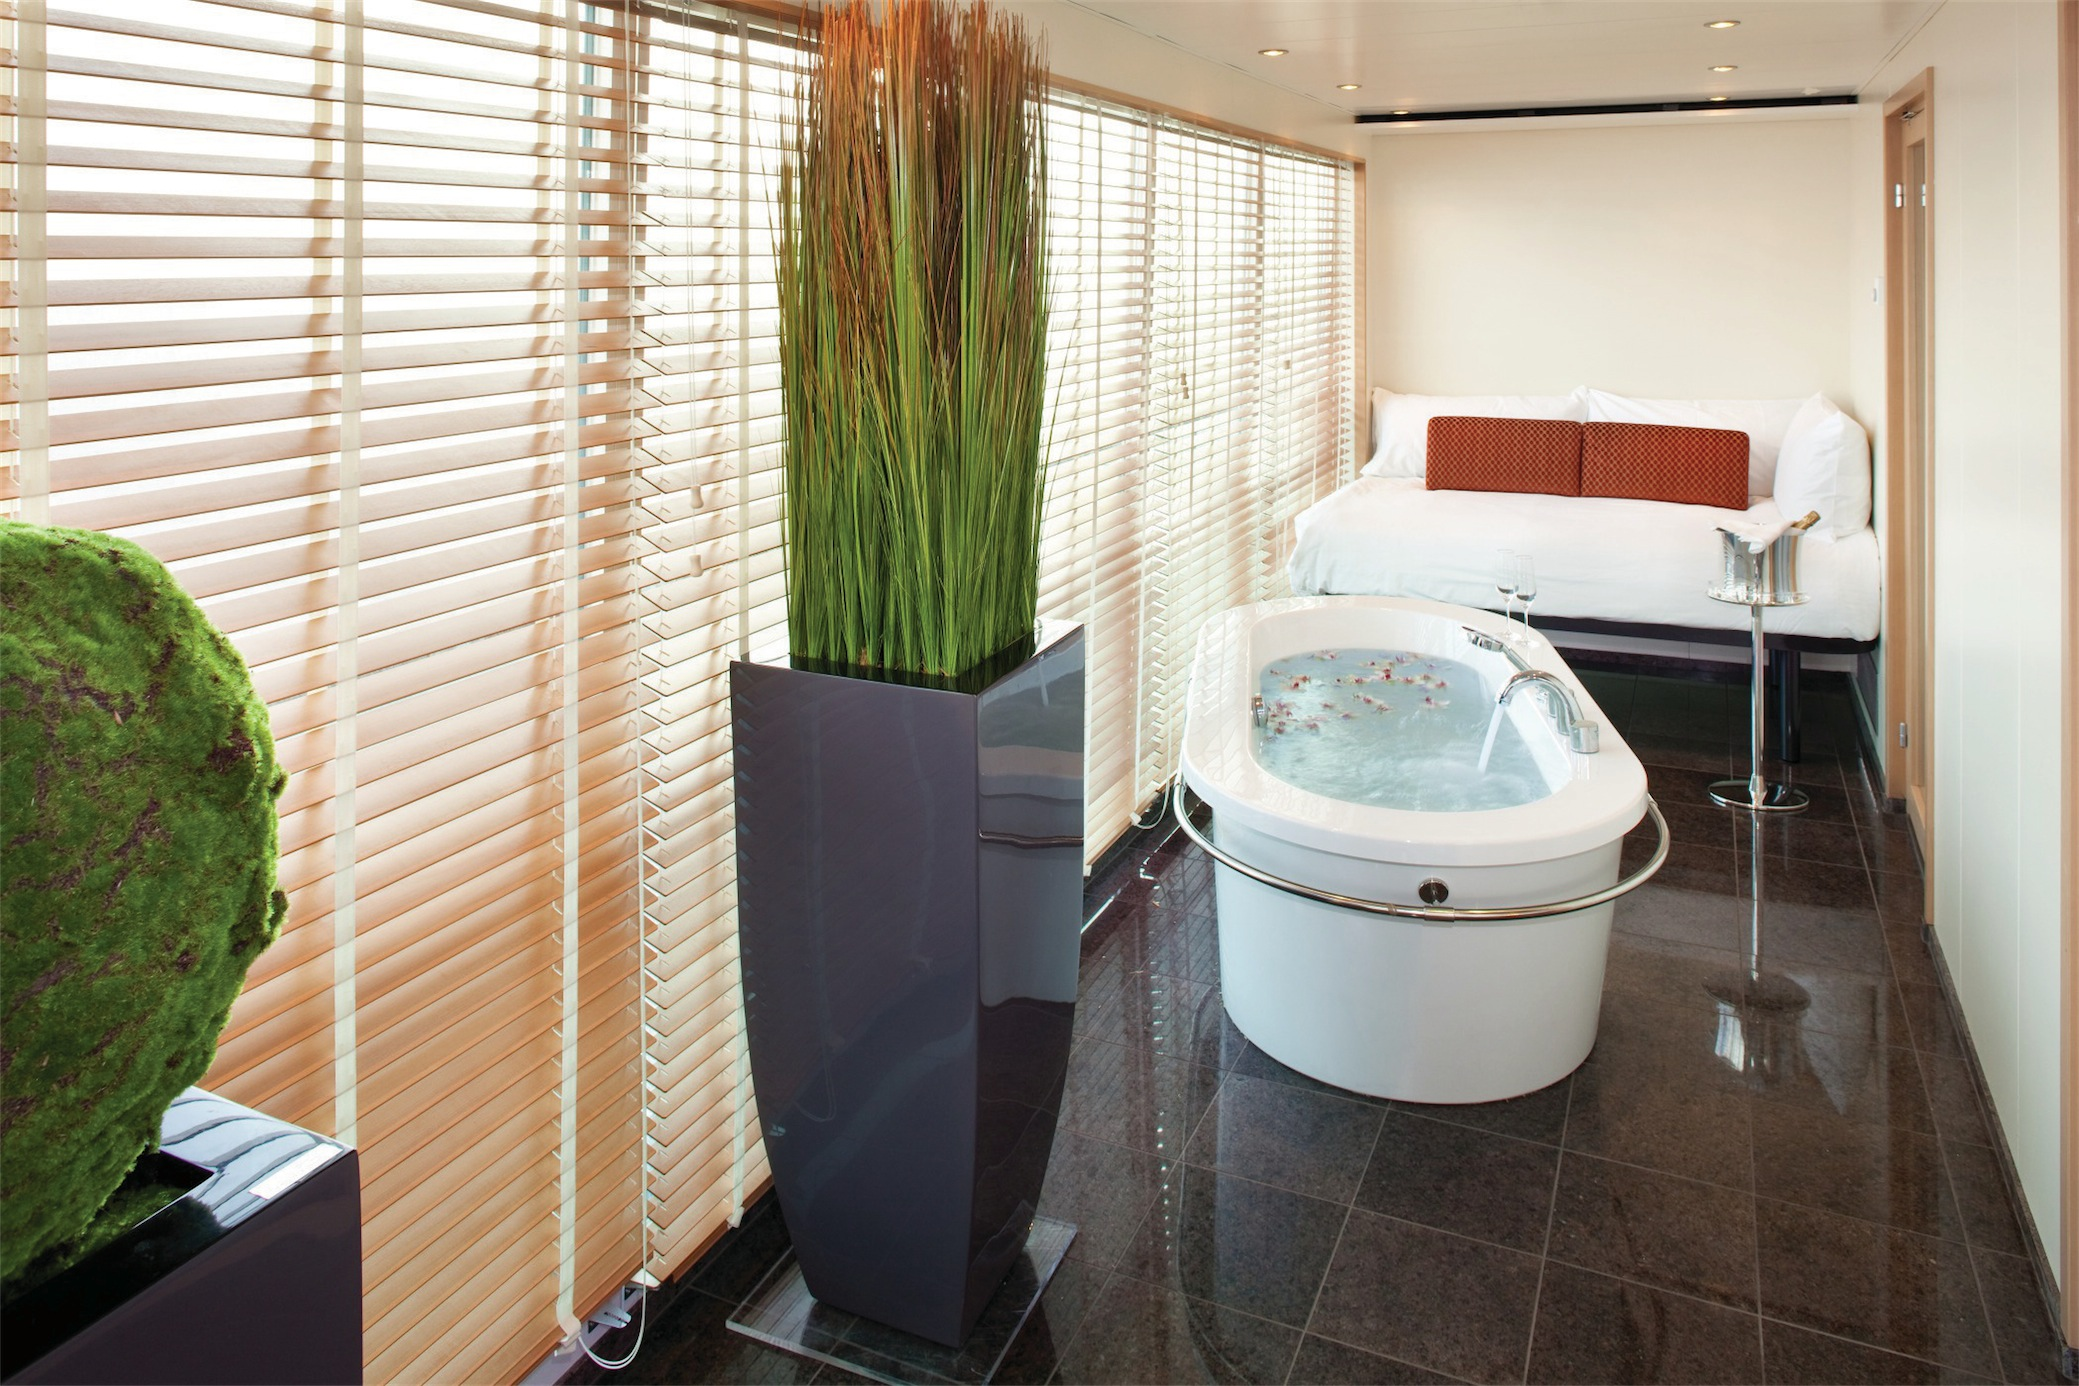 Seabourn Odyssey Class Accommodation Wintergarden Suite Solarium.jpg